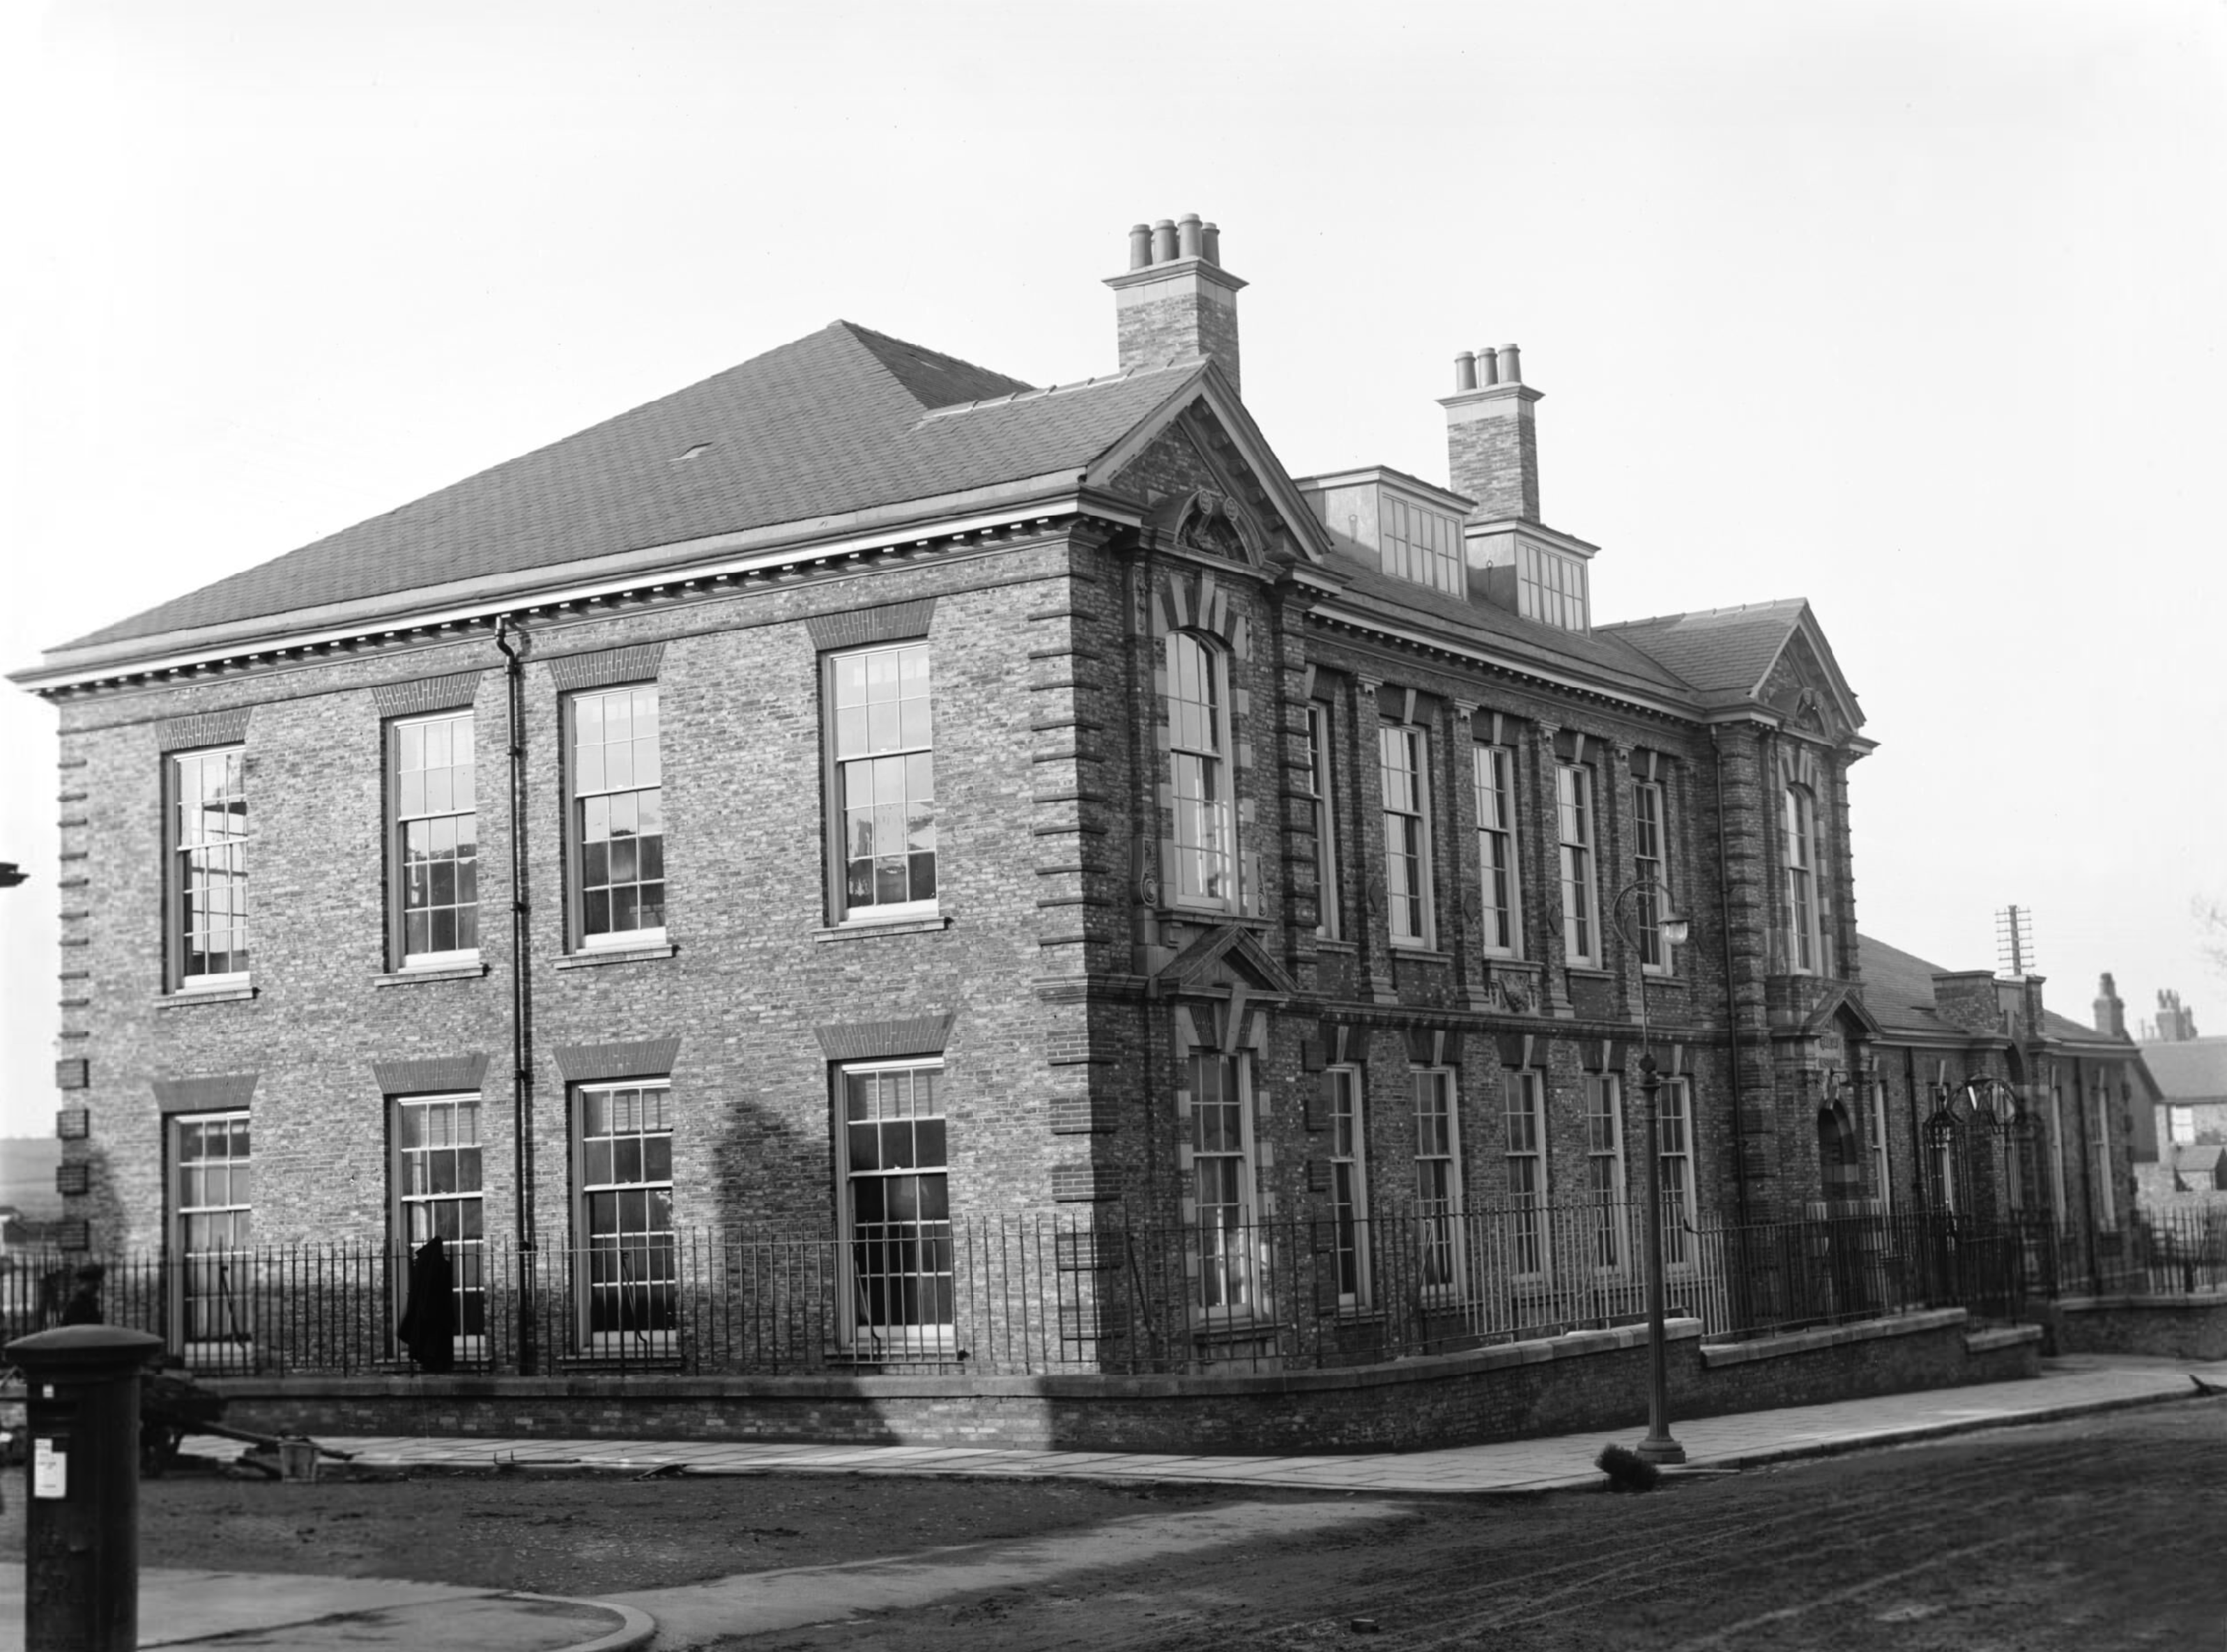 The Institute in 1913 not long after opening